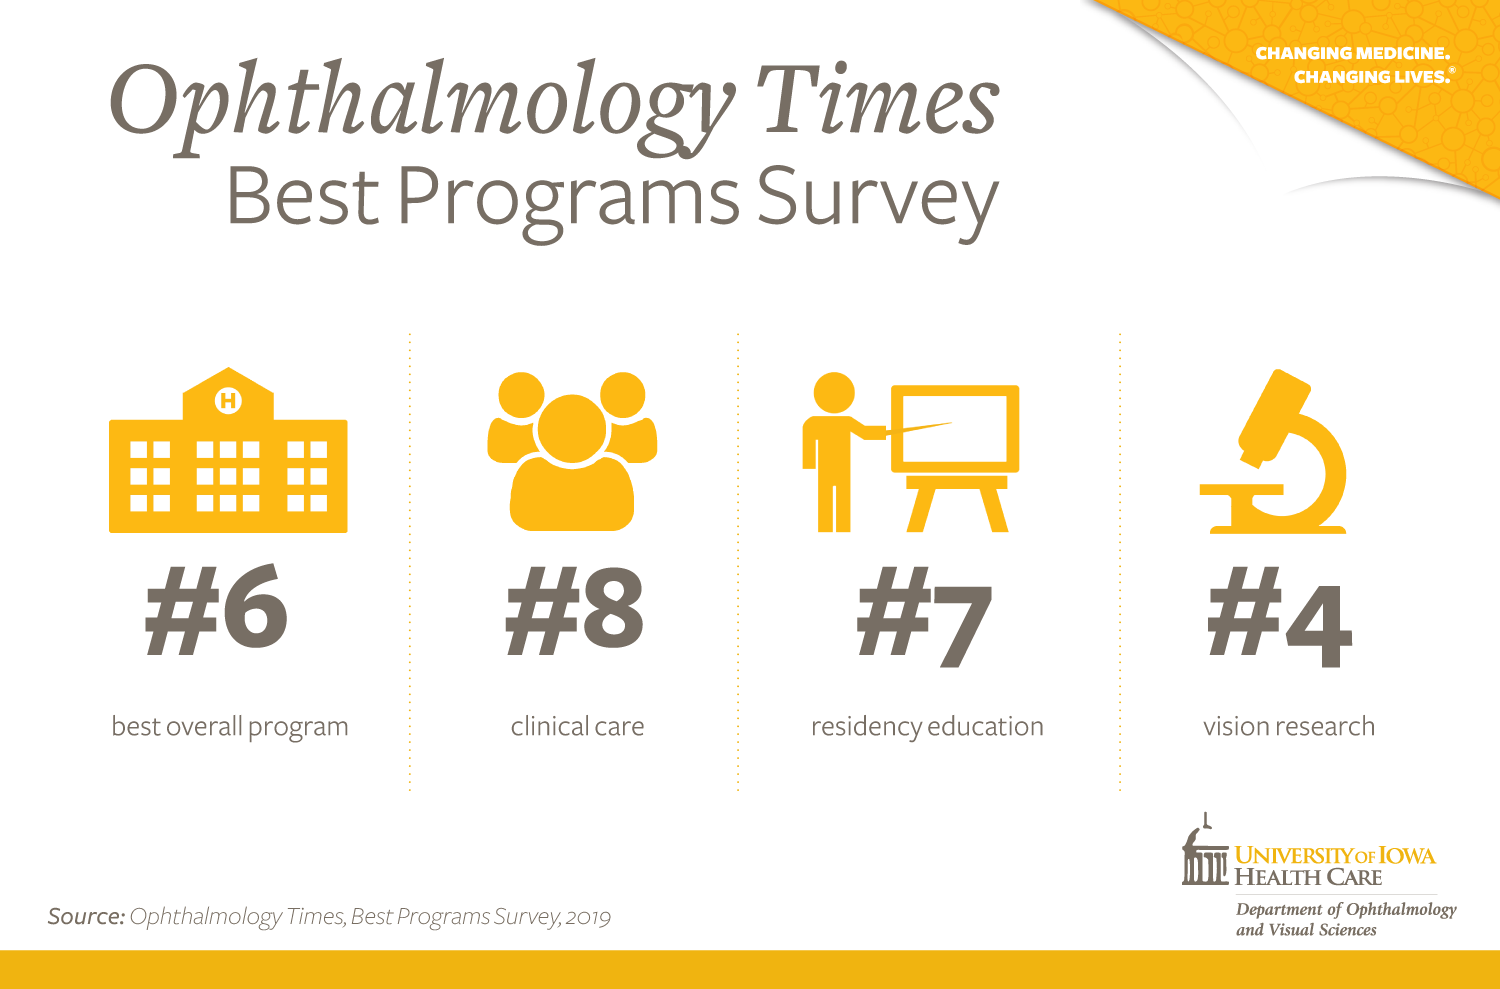 Ophthalmology Times Best Programs